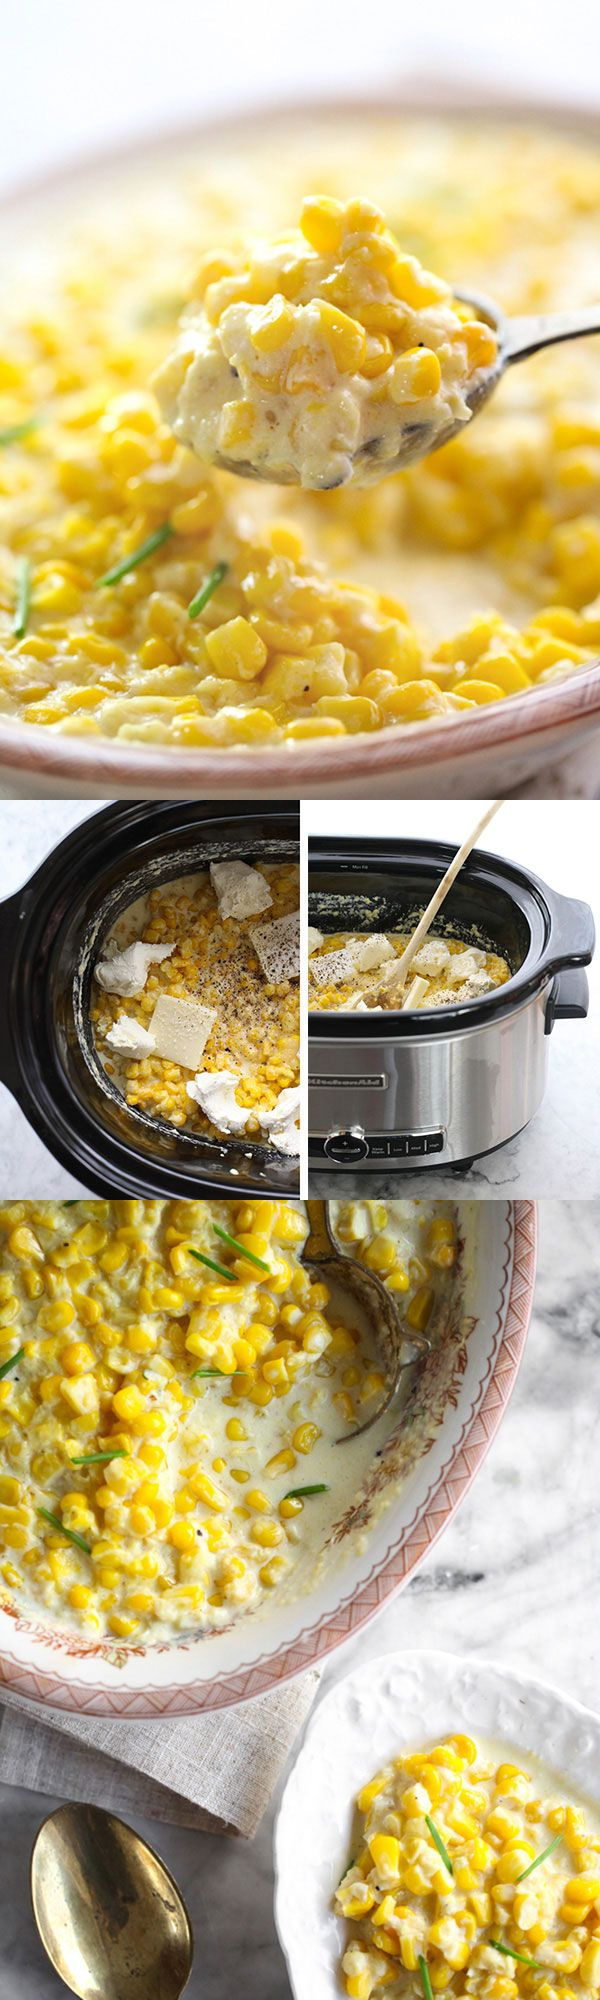 5 ingredients and a #crockpot or #slowcooker is all you need for this creamed corn #corn foodiecrush.com